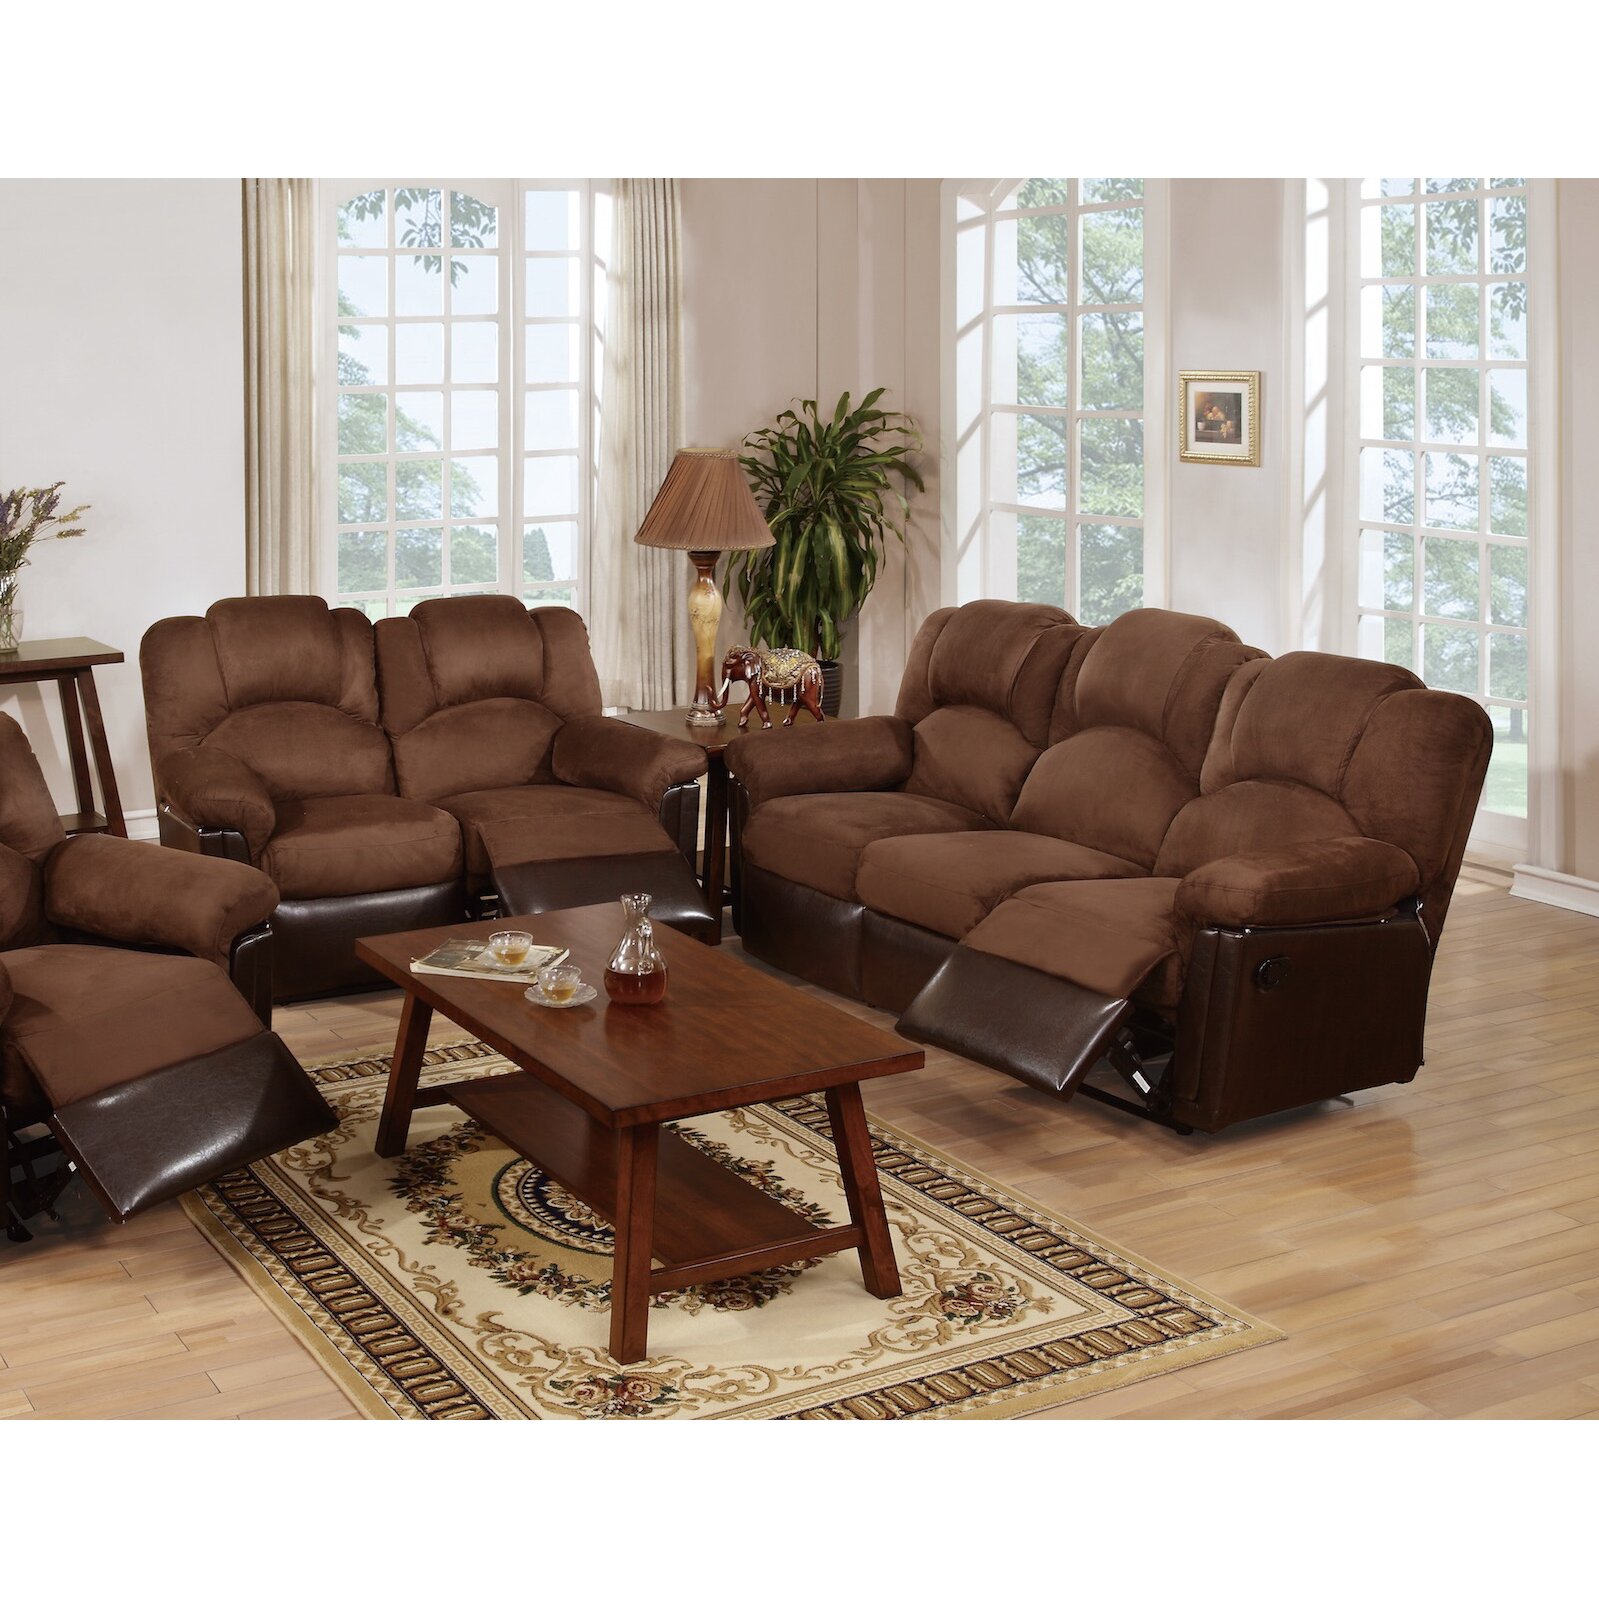 Infini Furnishings Ethan Reclining Sofa And Loveseat Set